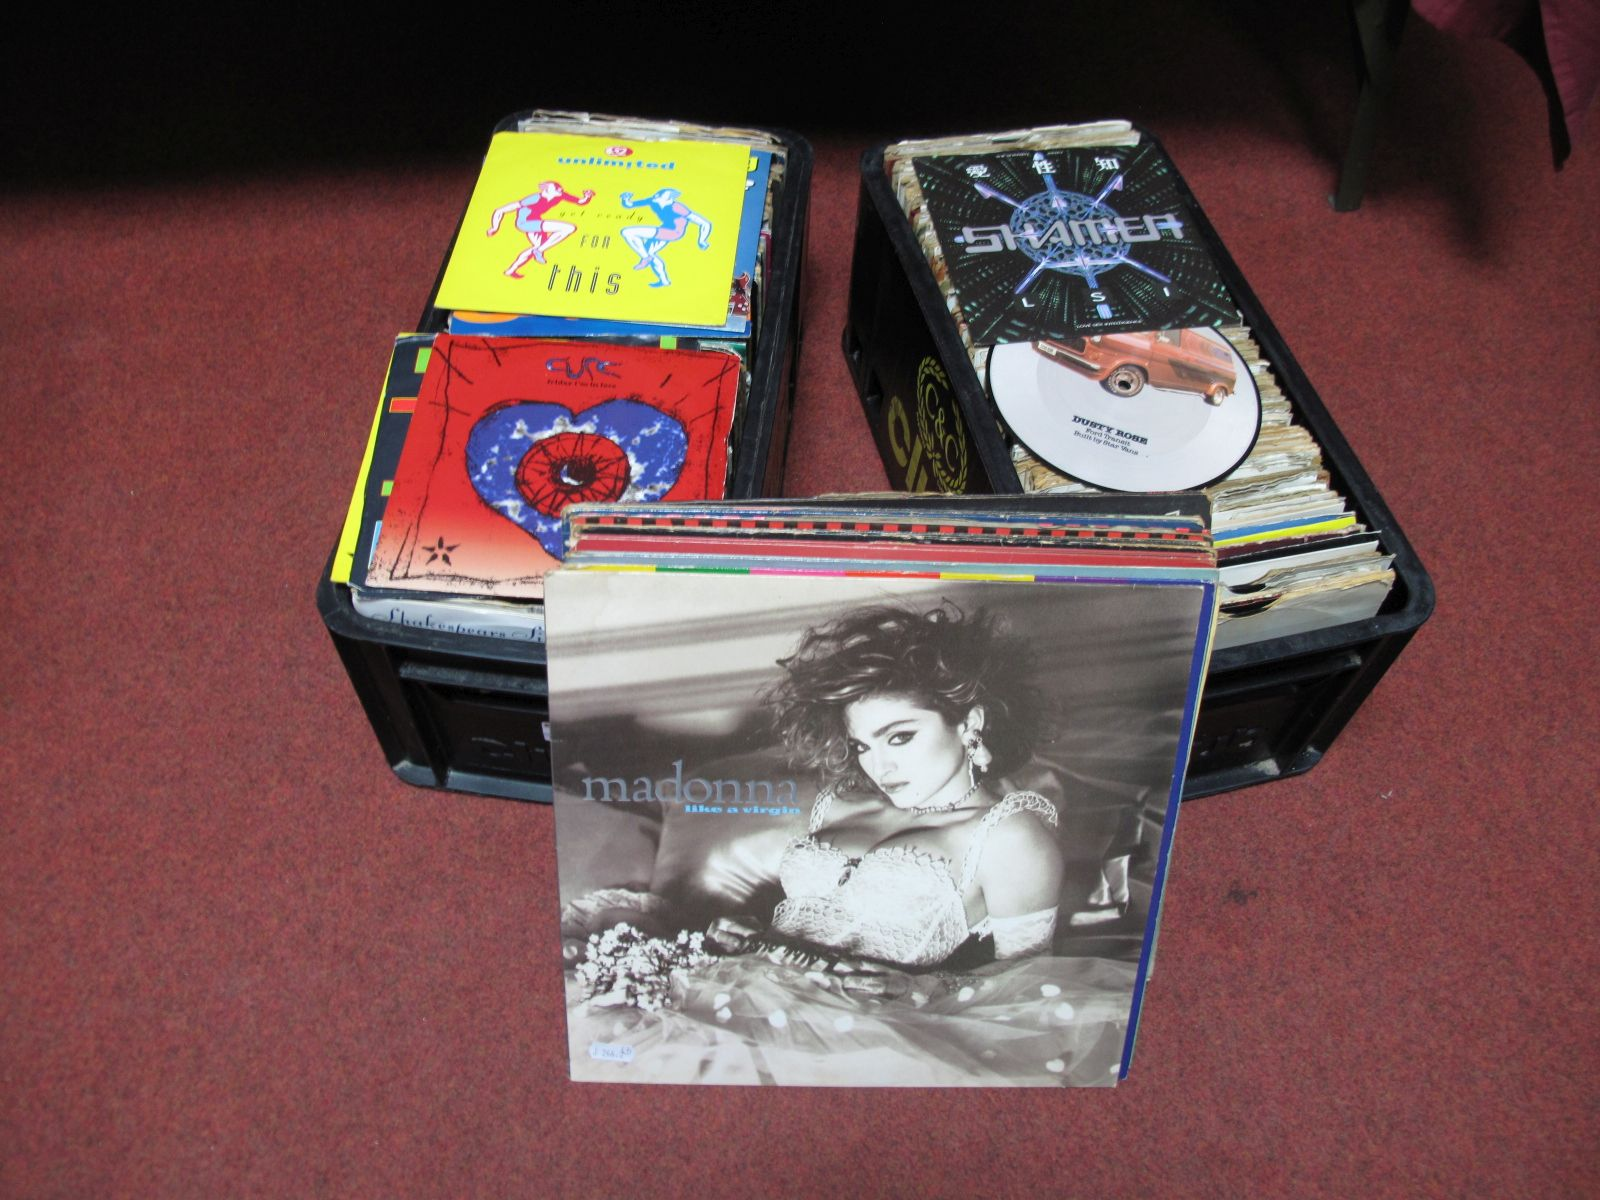 """Lot 30 - A Quantity of 7"""" Singles, (over 200) to include Elvis, Shaman, Cure, 2 Unlimited, etc, together with"""